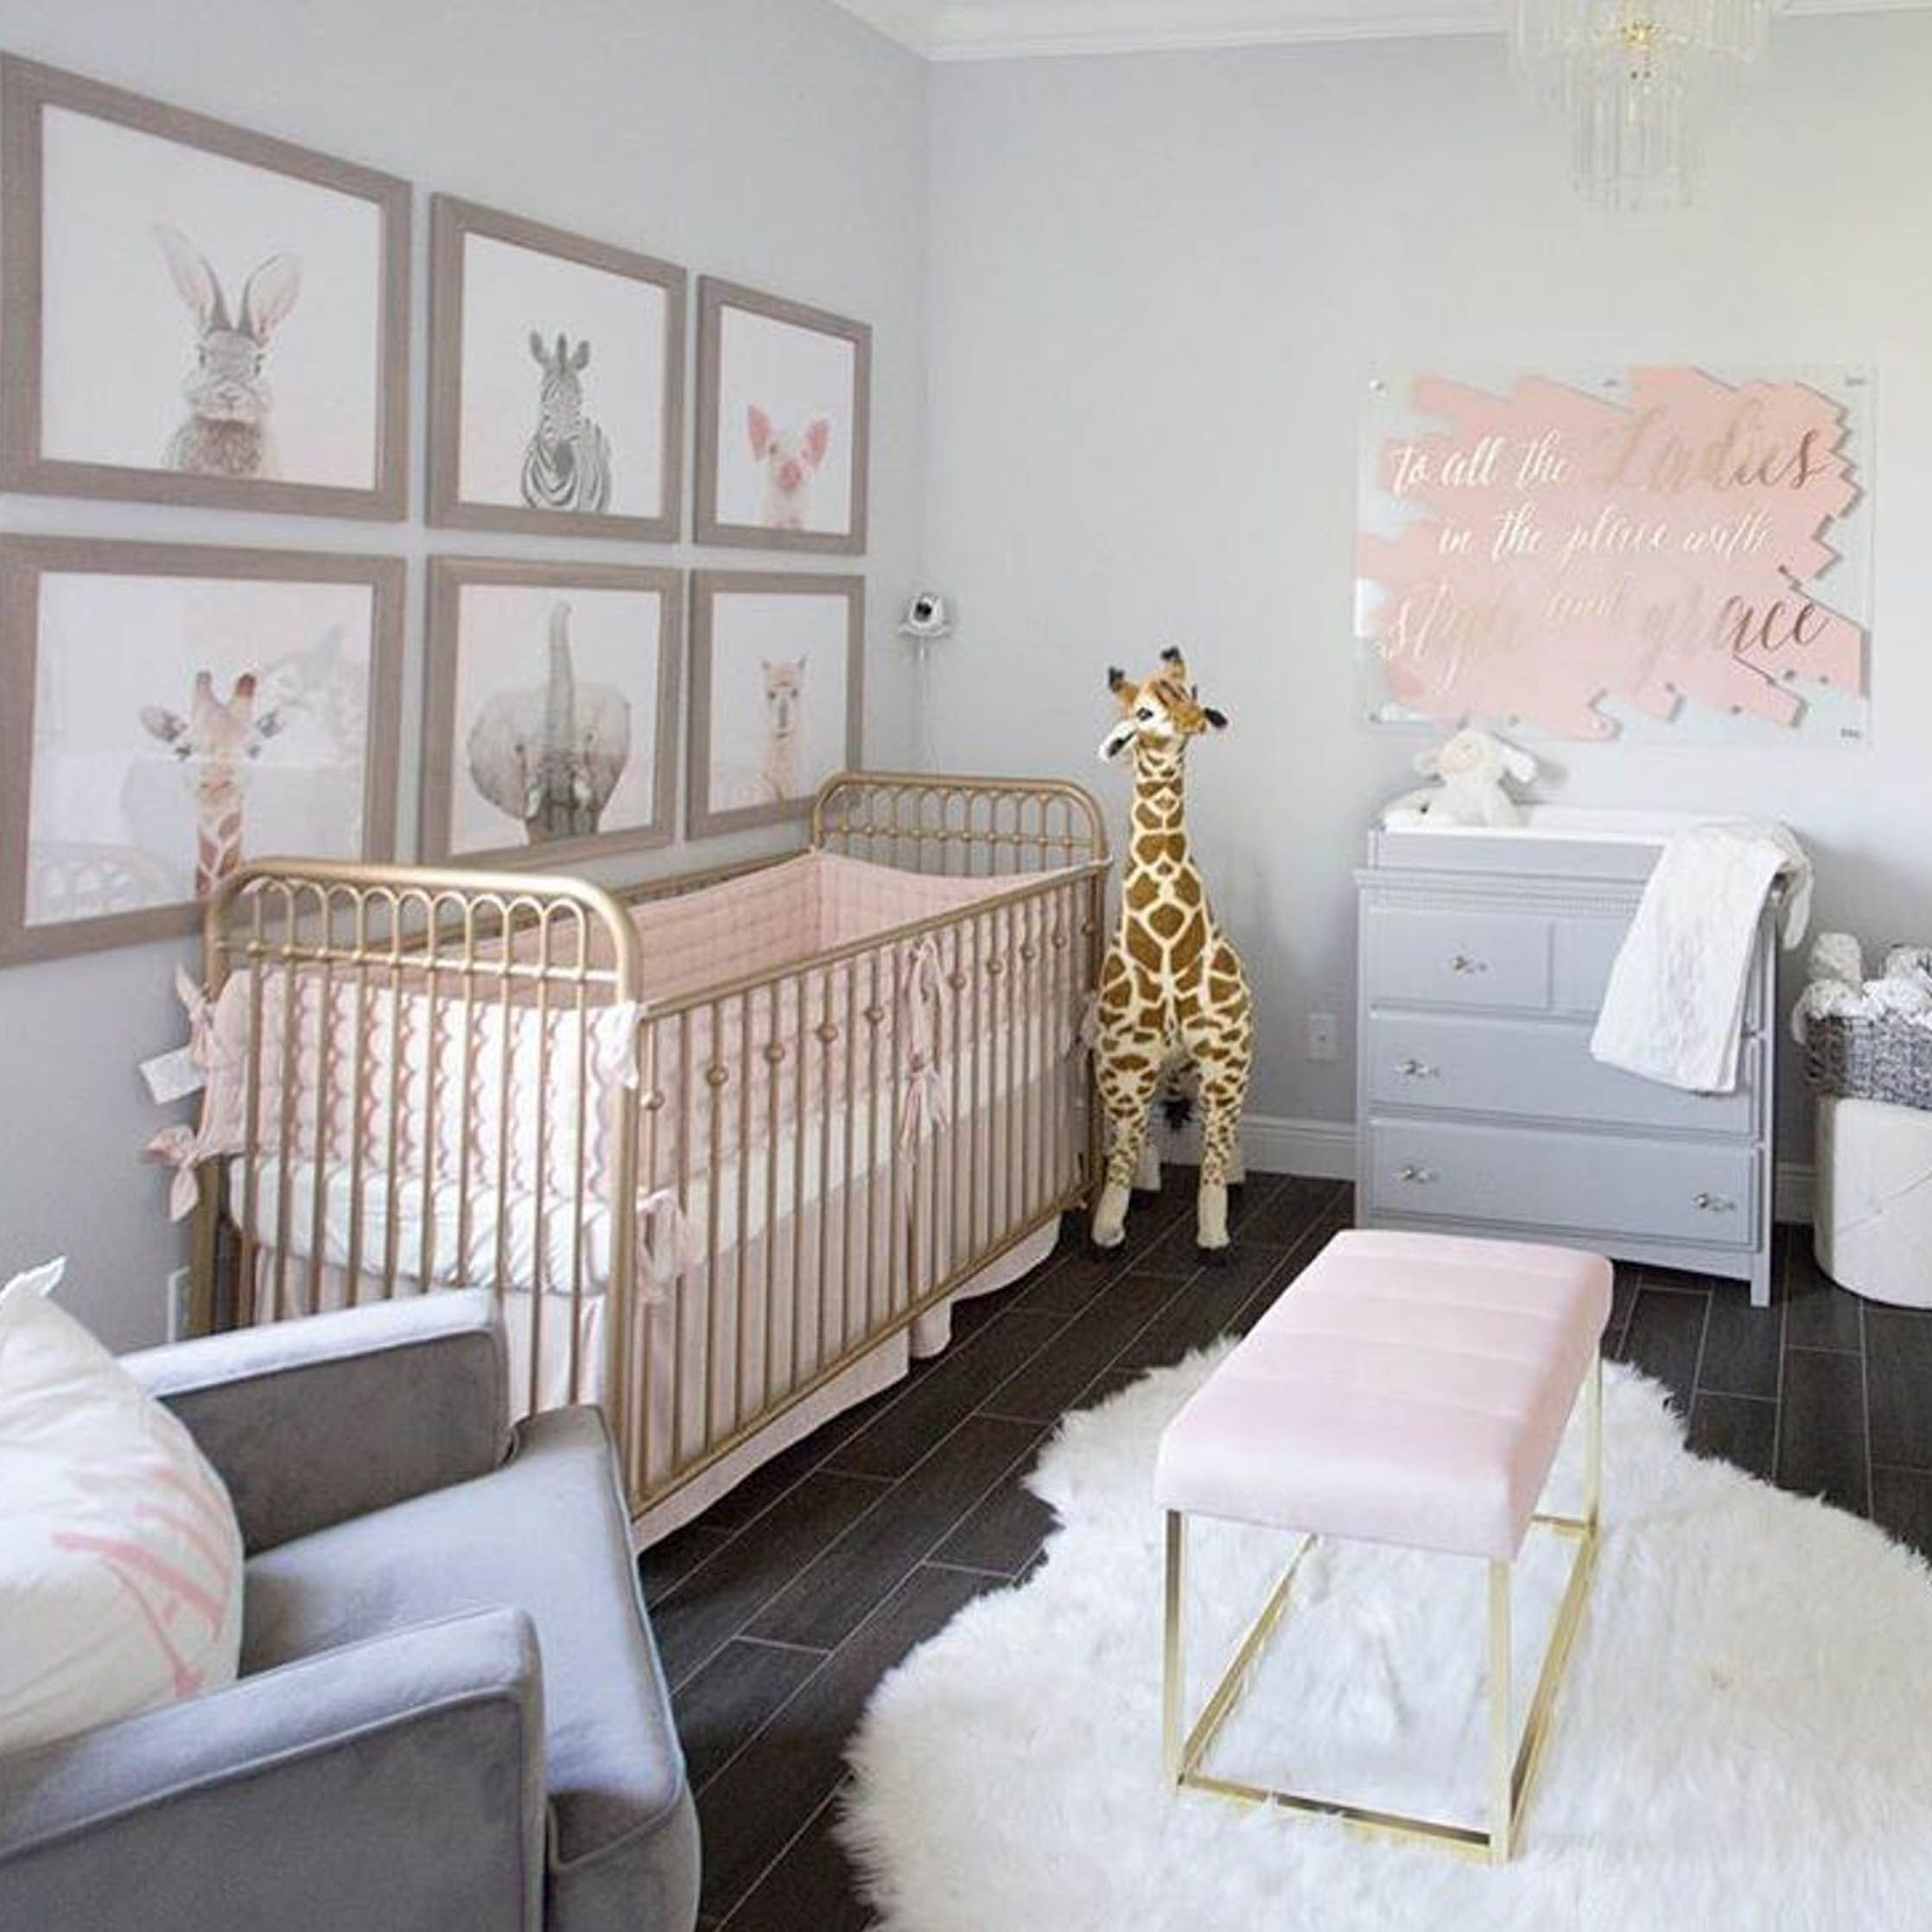 Here's What's Trending in the Nursery | Baby Girl Nursery ...